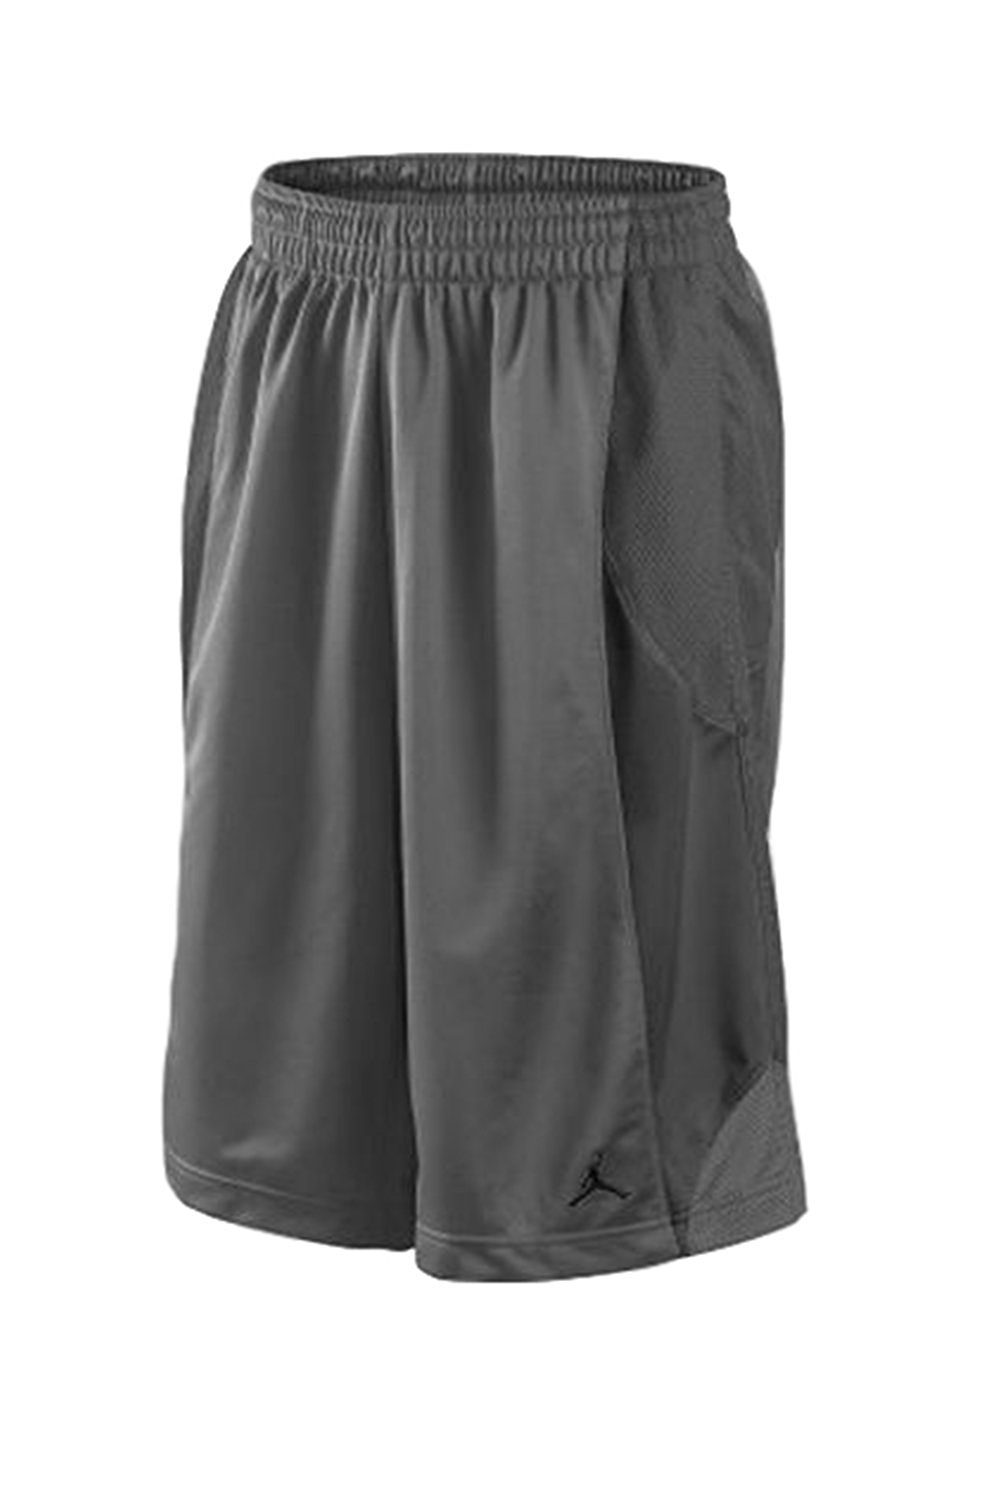 9f010f84f66 Buy Nike Mens Air Jordan Durasheen Jumpman Basketball Shorts Gray in ...